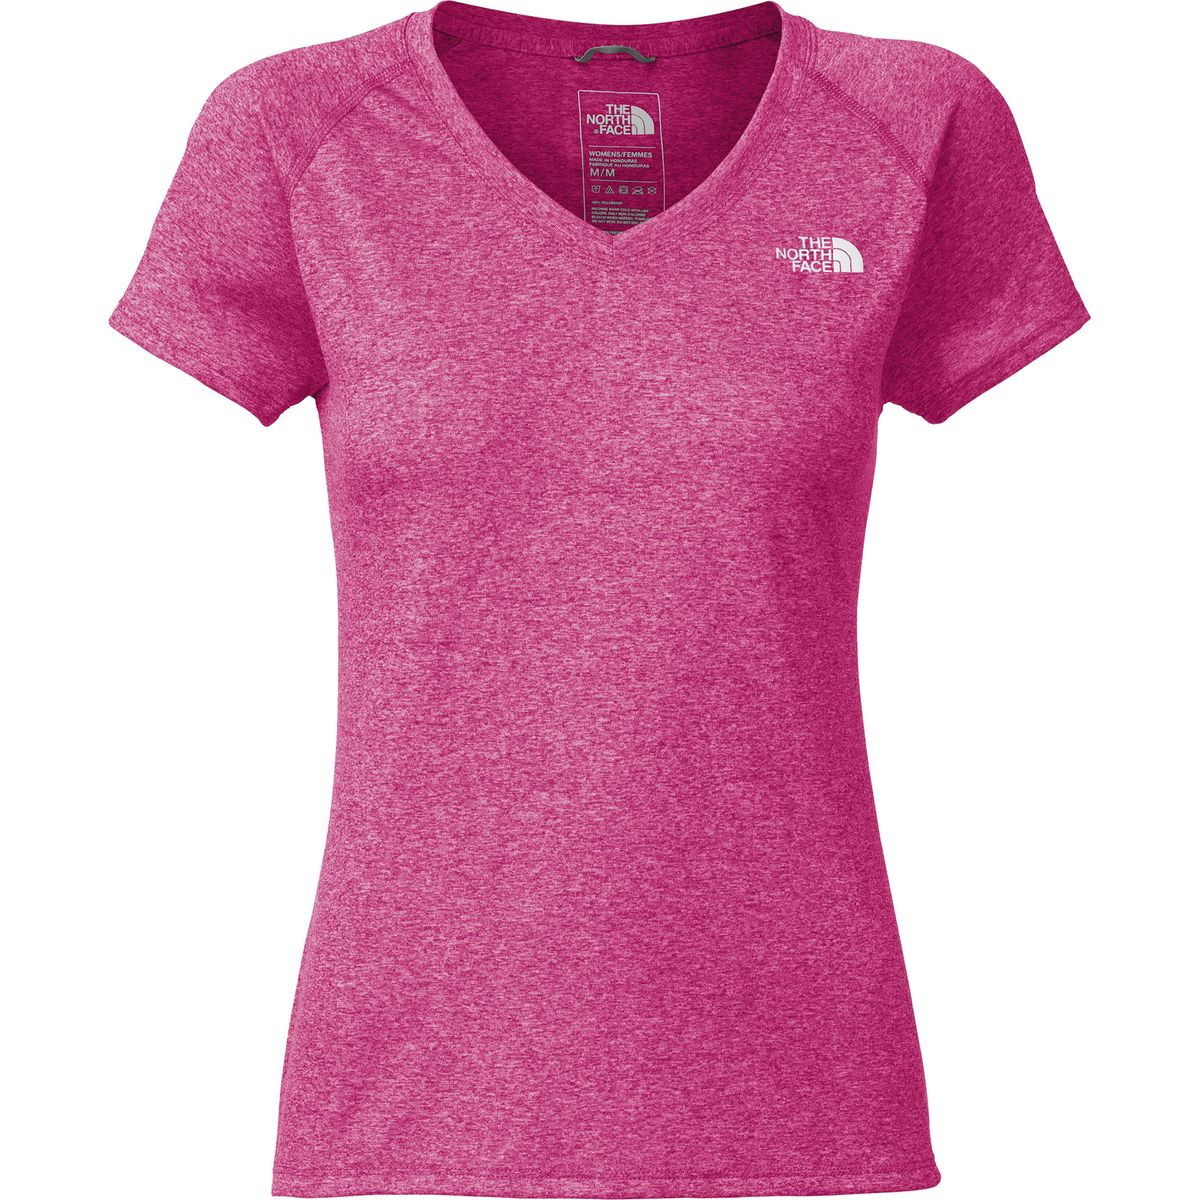 The North Face Reaxion Amp V-Neck T-Shirt - Short-Sleeve - Women